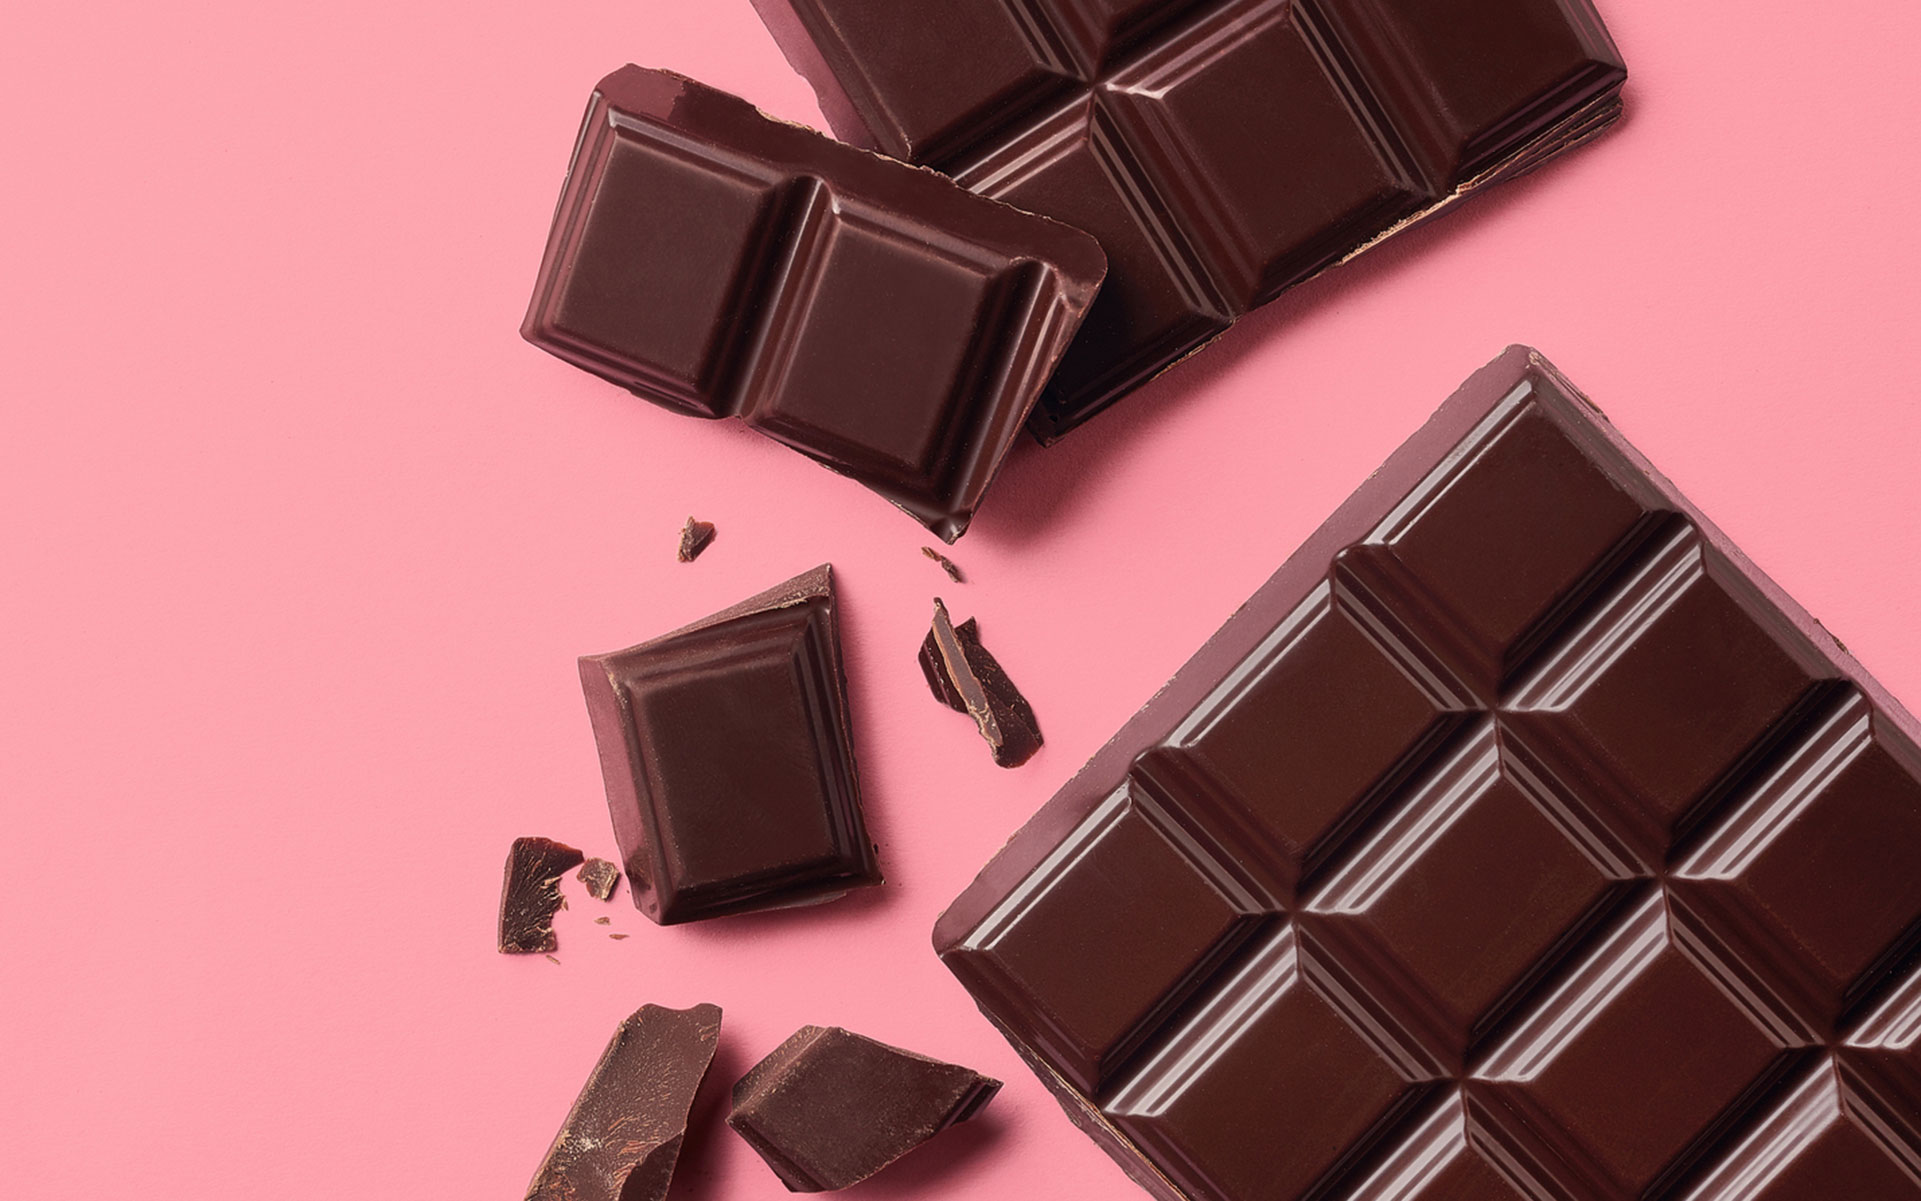 thc, cannabis infused chocolate